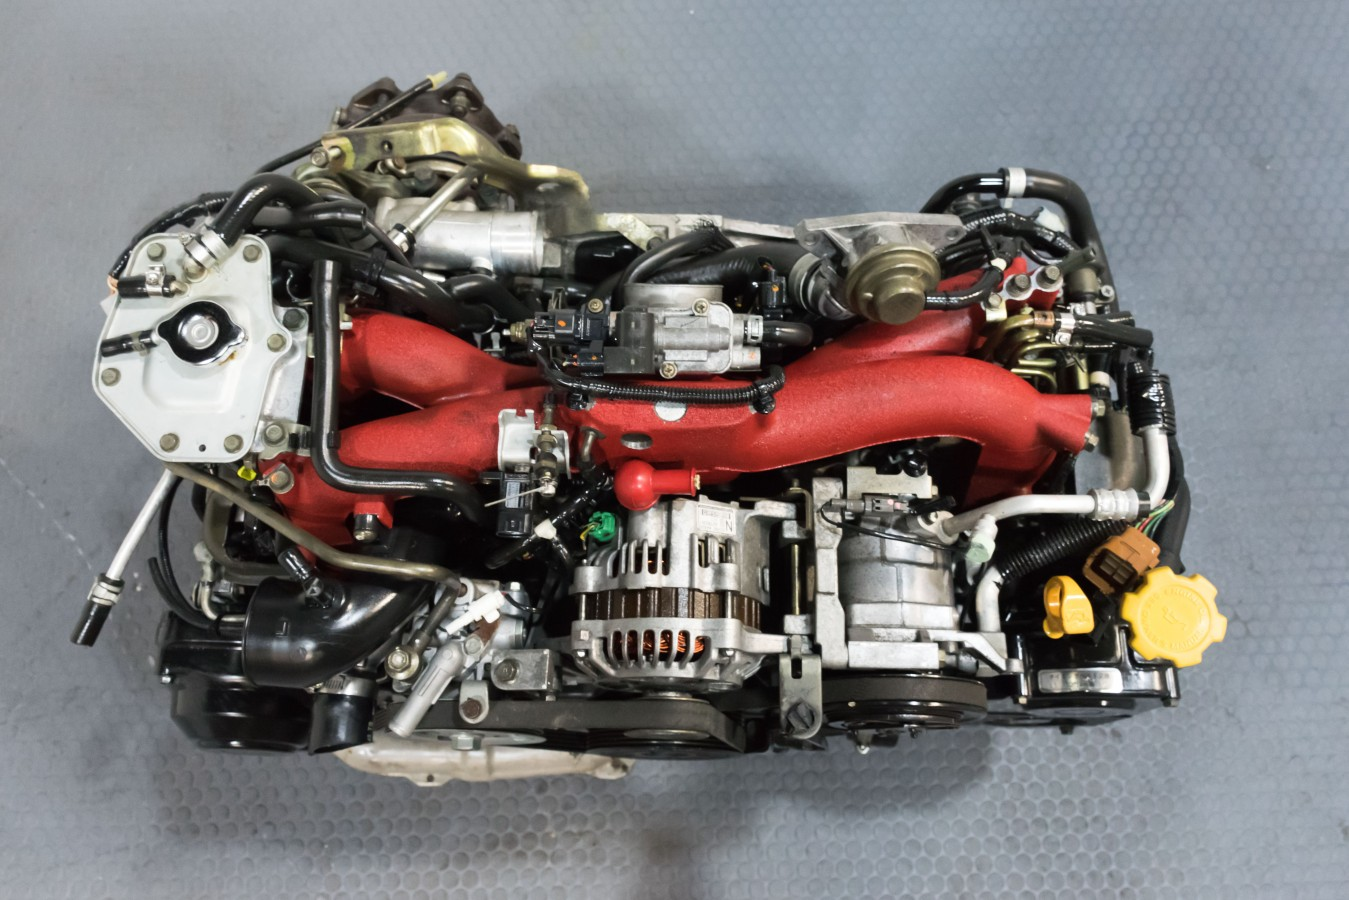 Version 9 Ej207 Jdm Wrx Sti Engine Package With Vf37 Twin